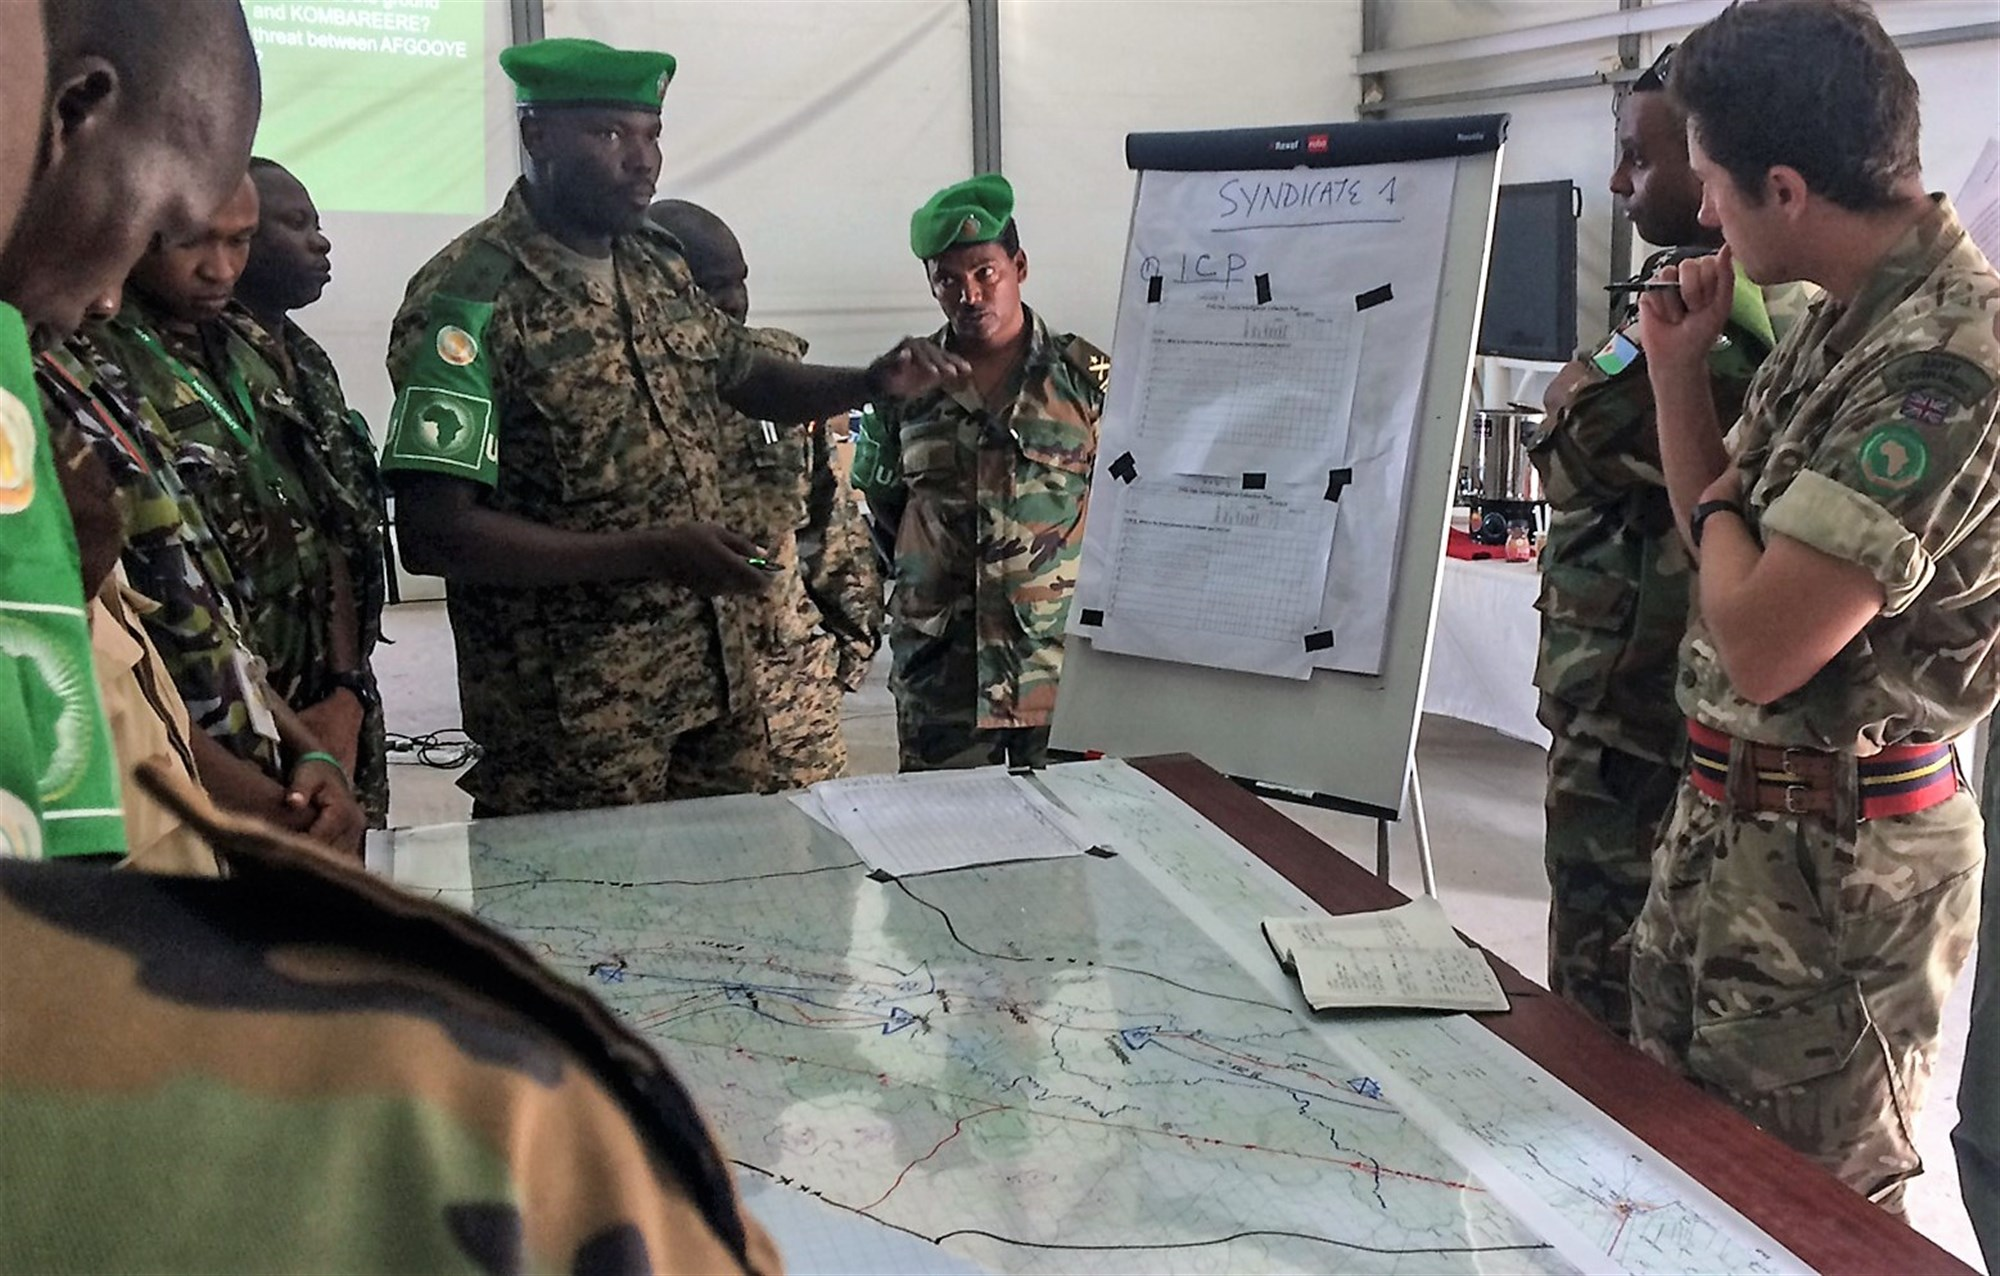 British Army Capt. Doug Collett, U.K. Mission Support Team, gives instruction during an intelligence, surveillance and reconnaissance (ISR) course in Mogadishu, Somalia, Aug. 7, 2017. Soldiers from five countries supporting African Union Mission in Somalia are taking the Brittish led ISR course to strengthen efforts countering regional violent extremist organizations. (Photo courtesy U.S. Air Force Capt. Brian Hurt)